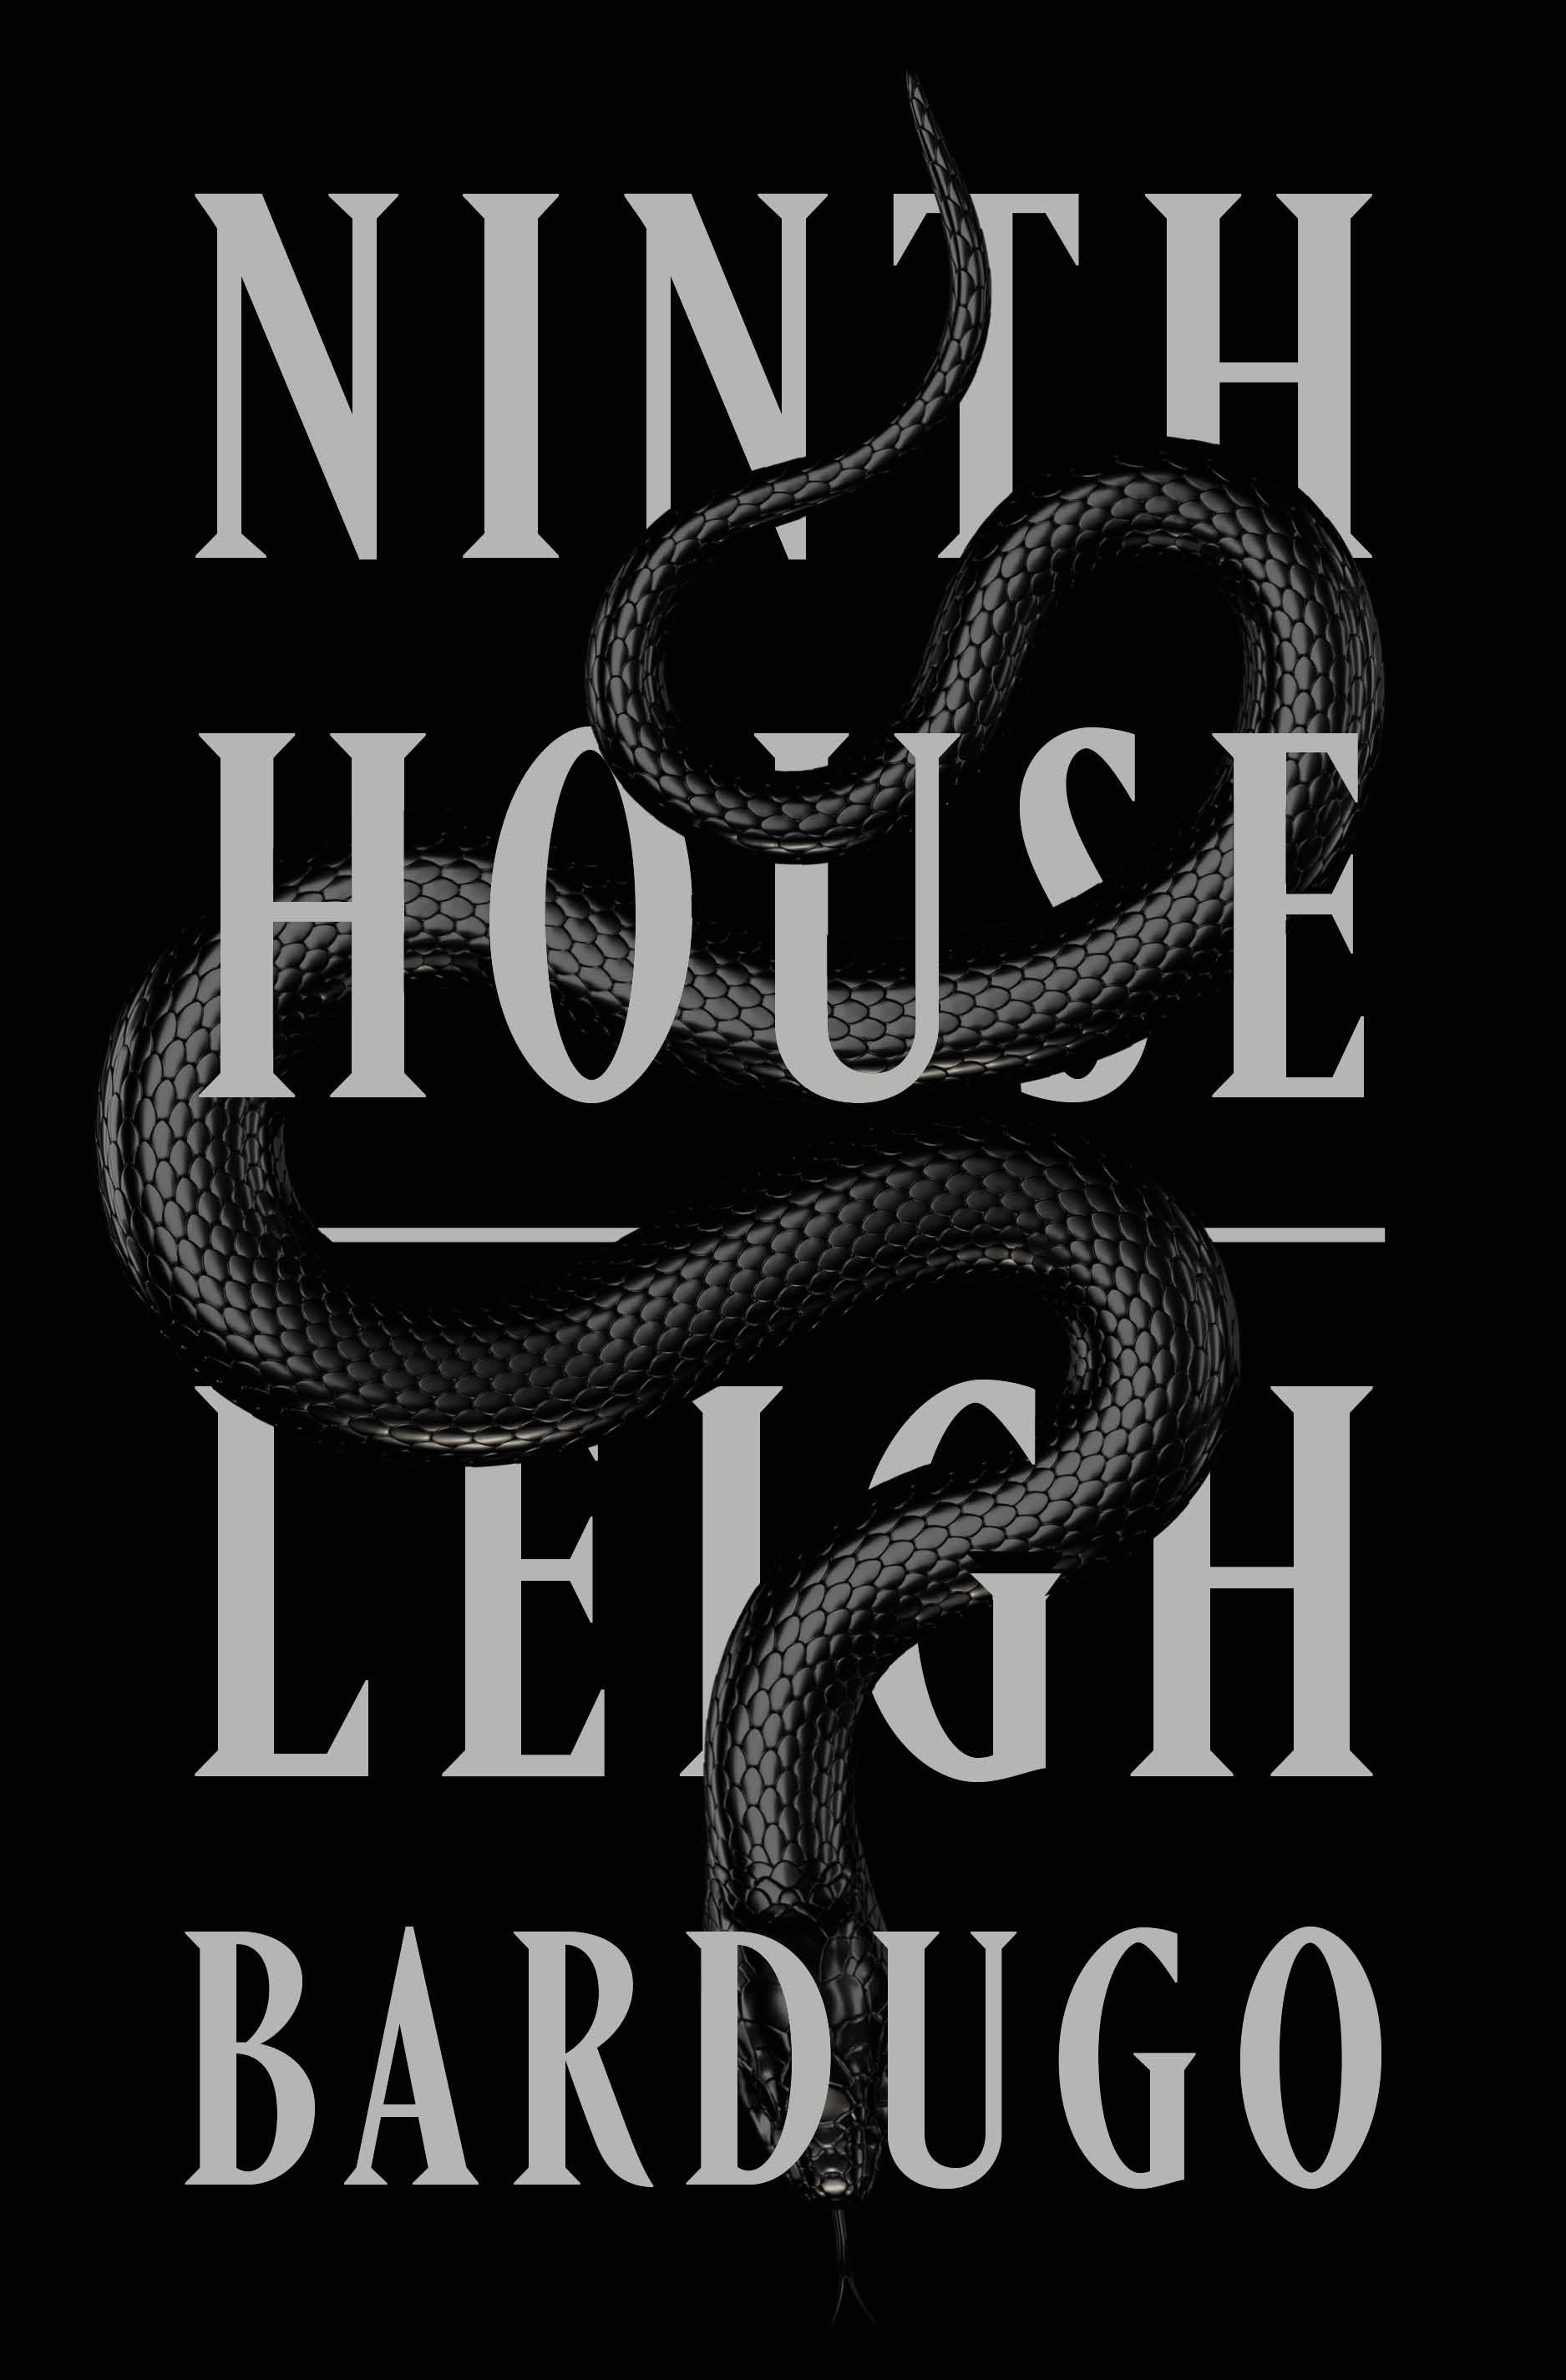 The cover of the book Ninth House by Leigh Bardugo shows a snake winding through the title.